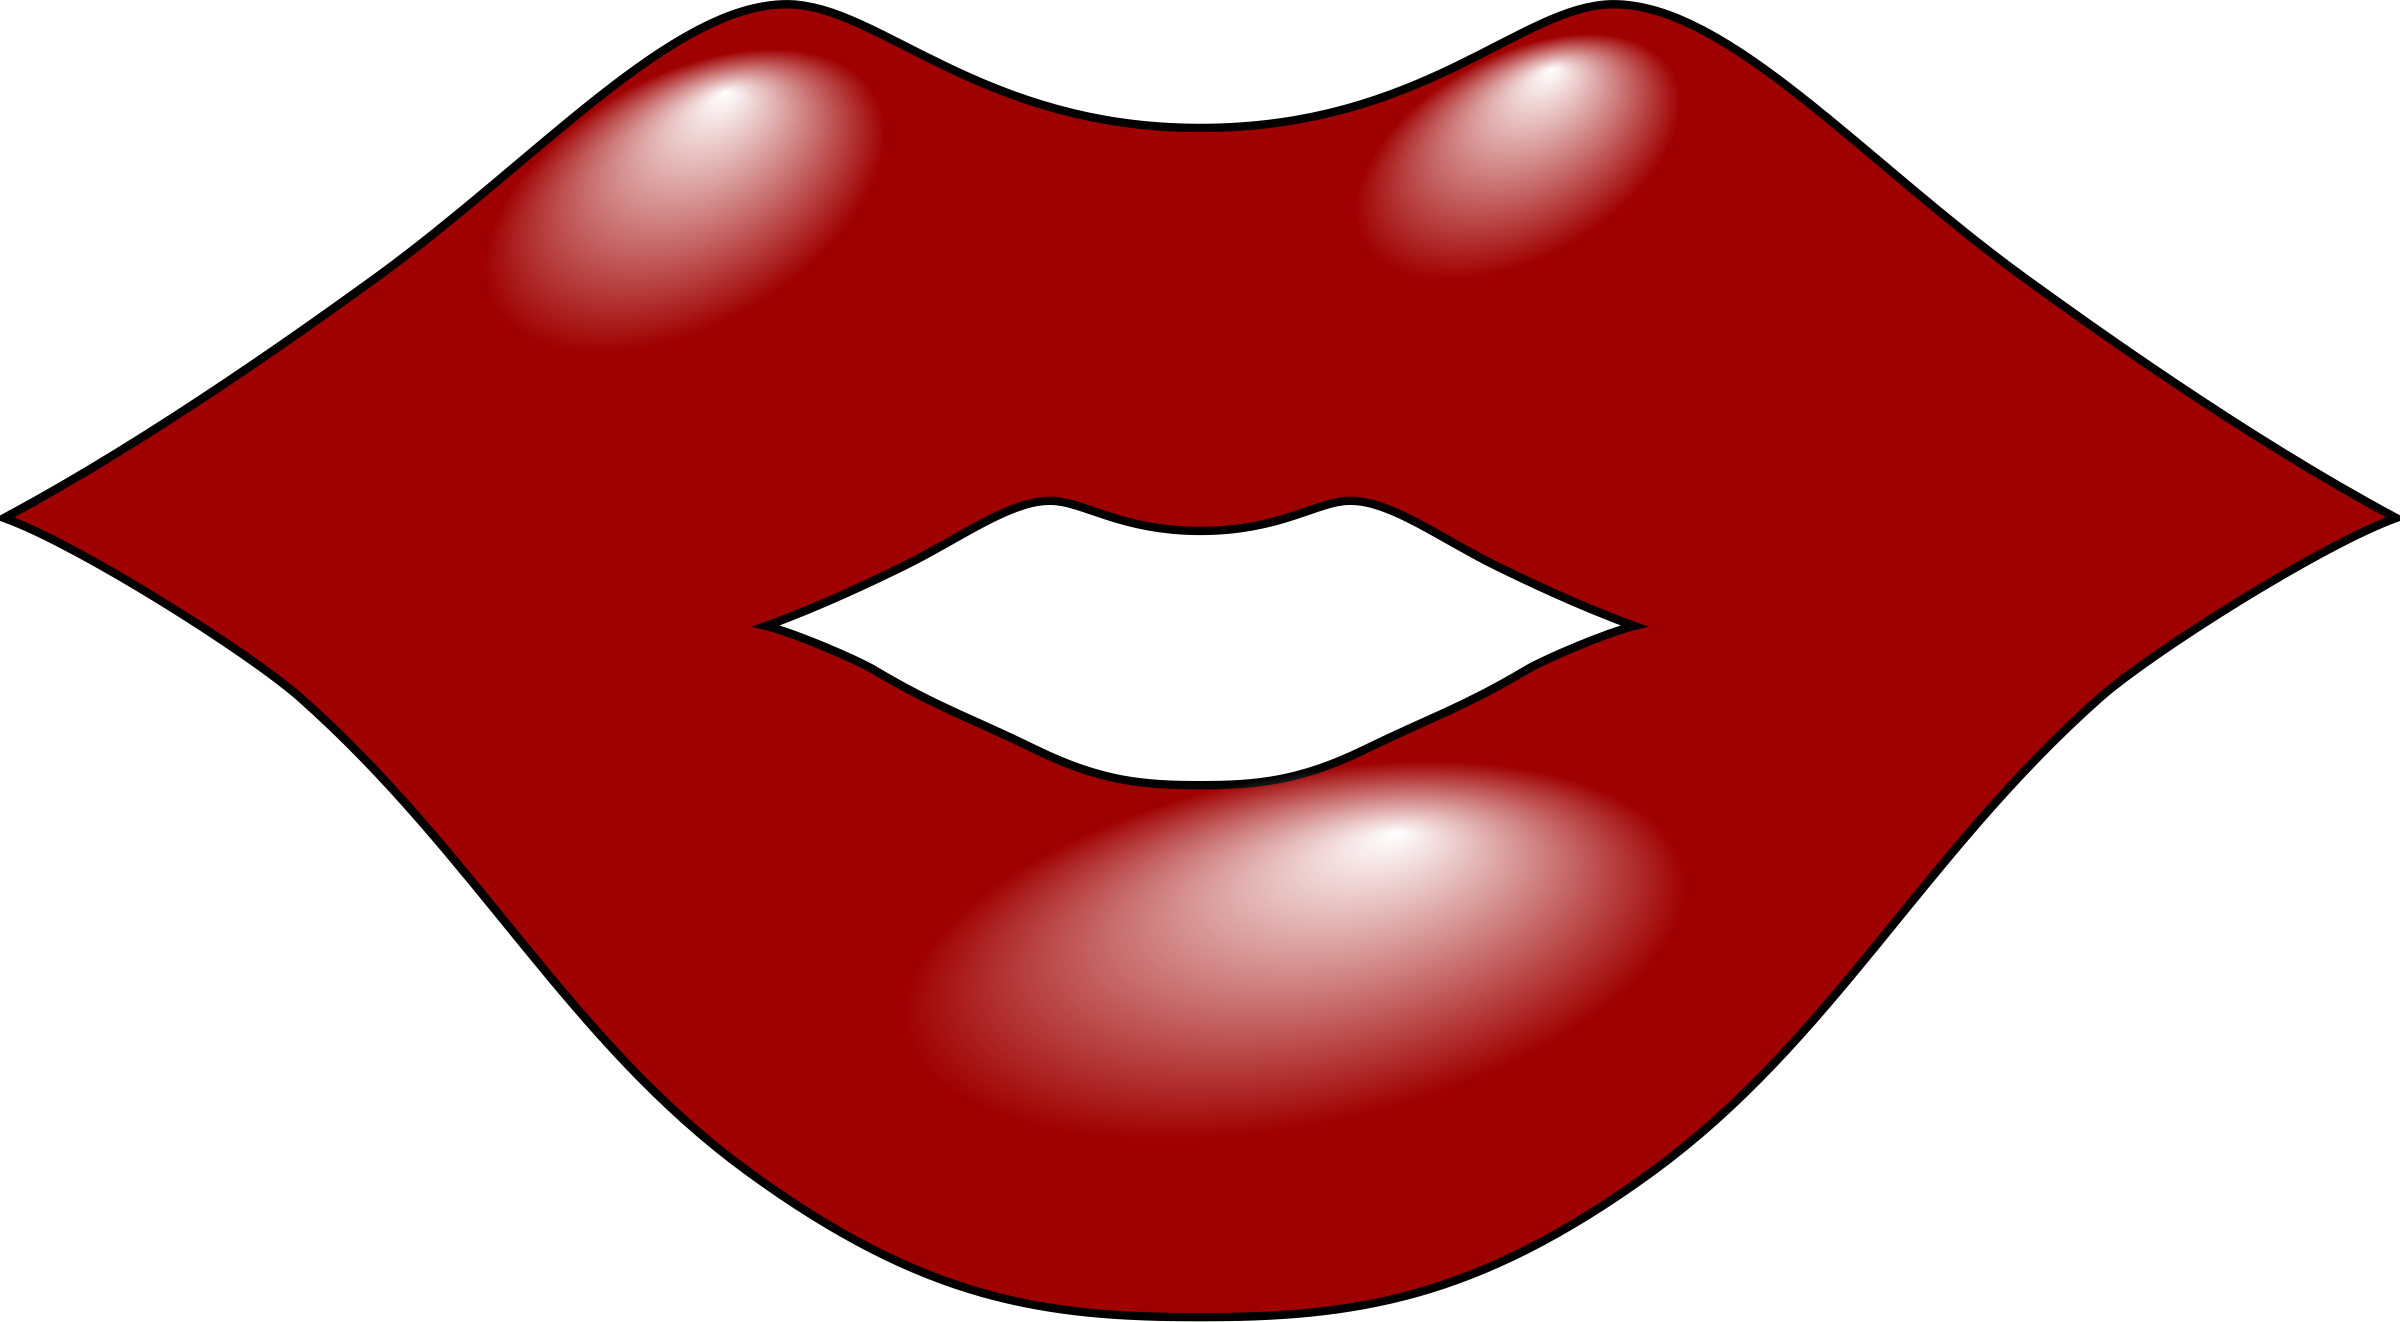 Lips clipart png. Collection of pouty